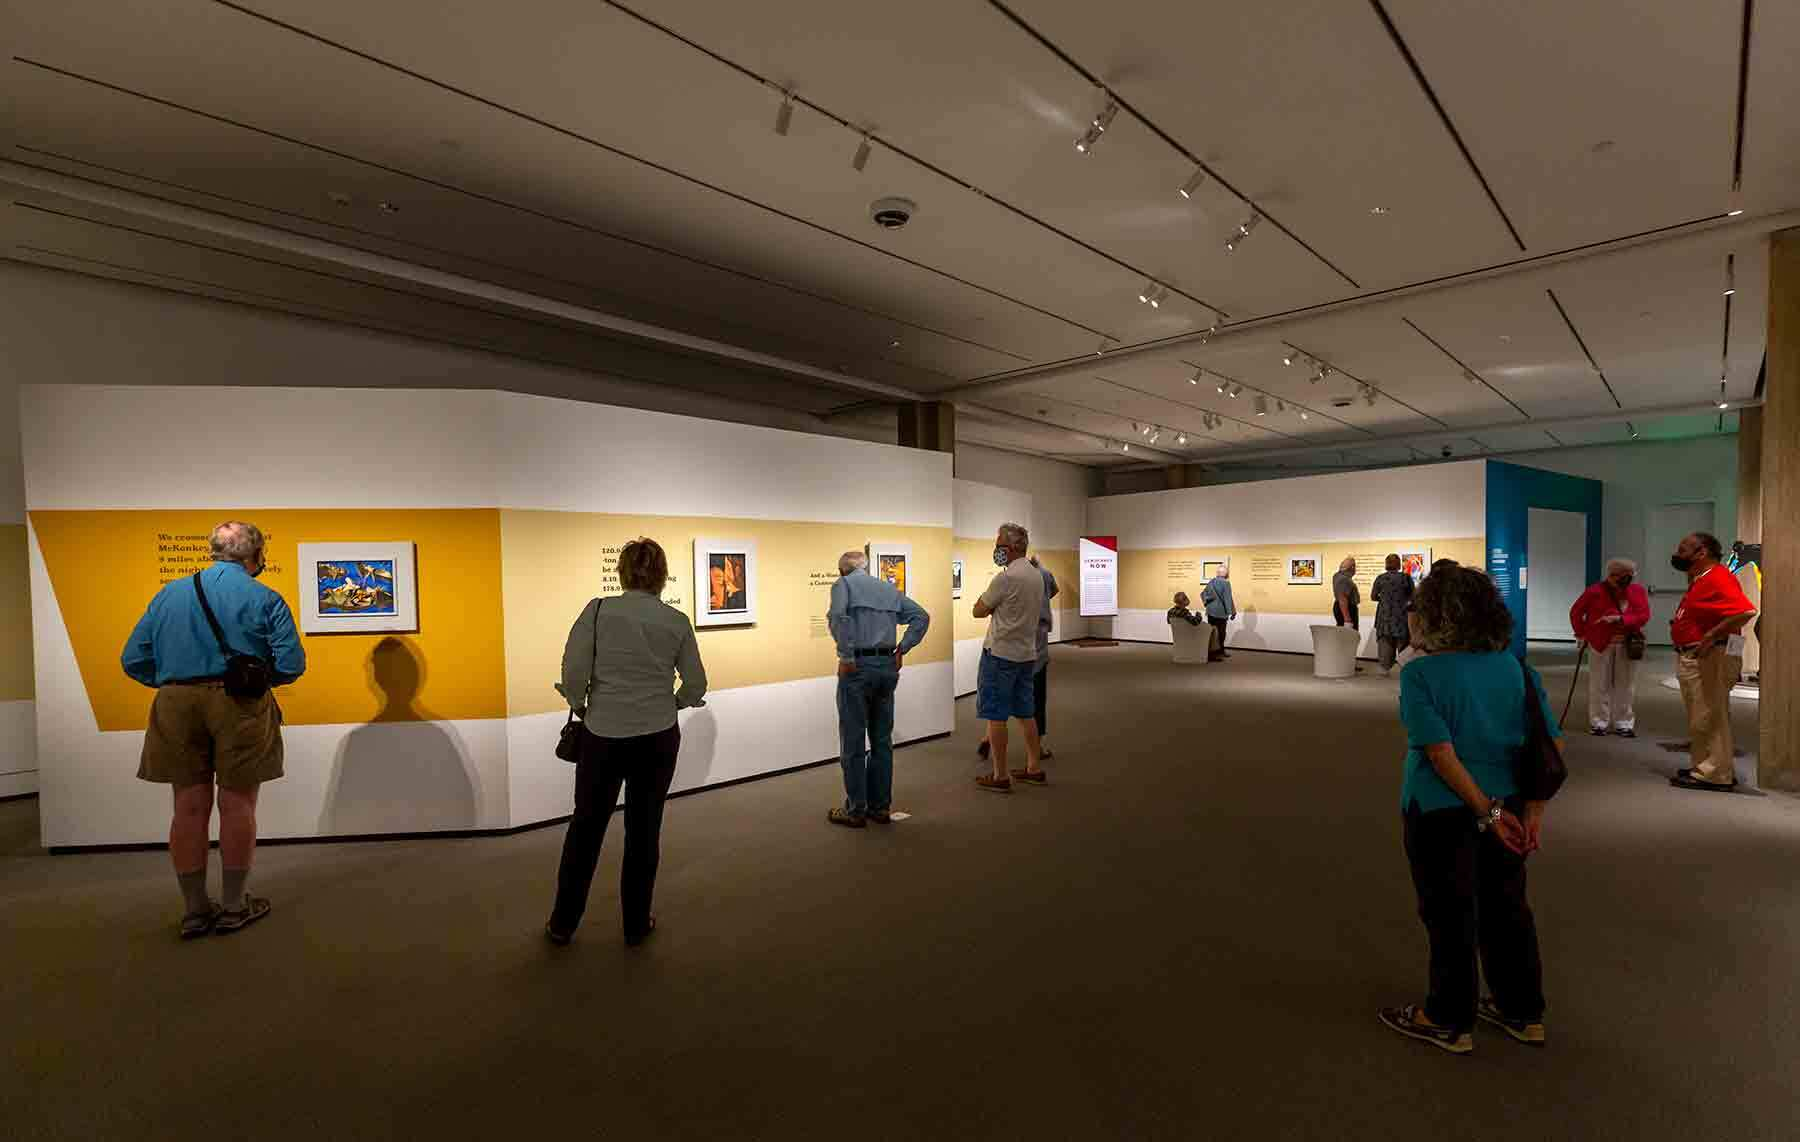 Socially distanced visitors feast their eyes on the paintings of Jacob Lawrence's Struggle series, which is on view at PEM until August 9.